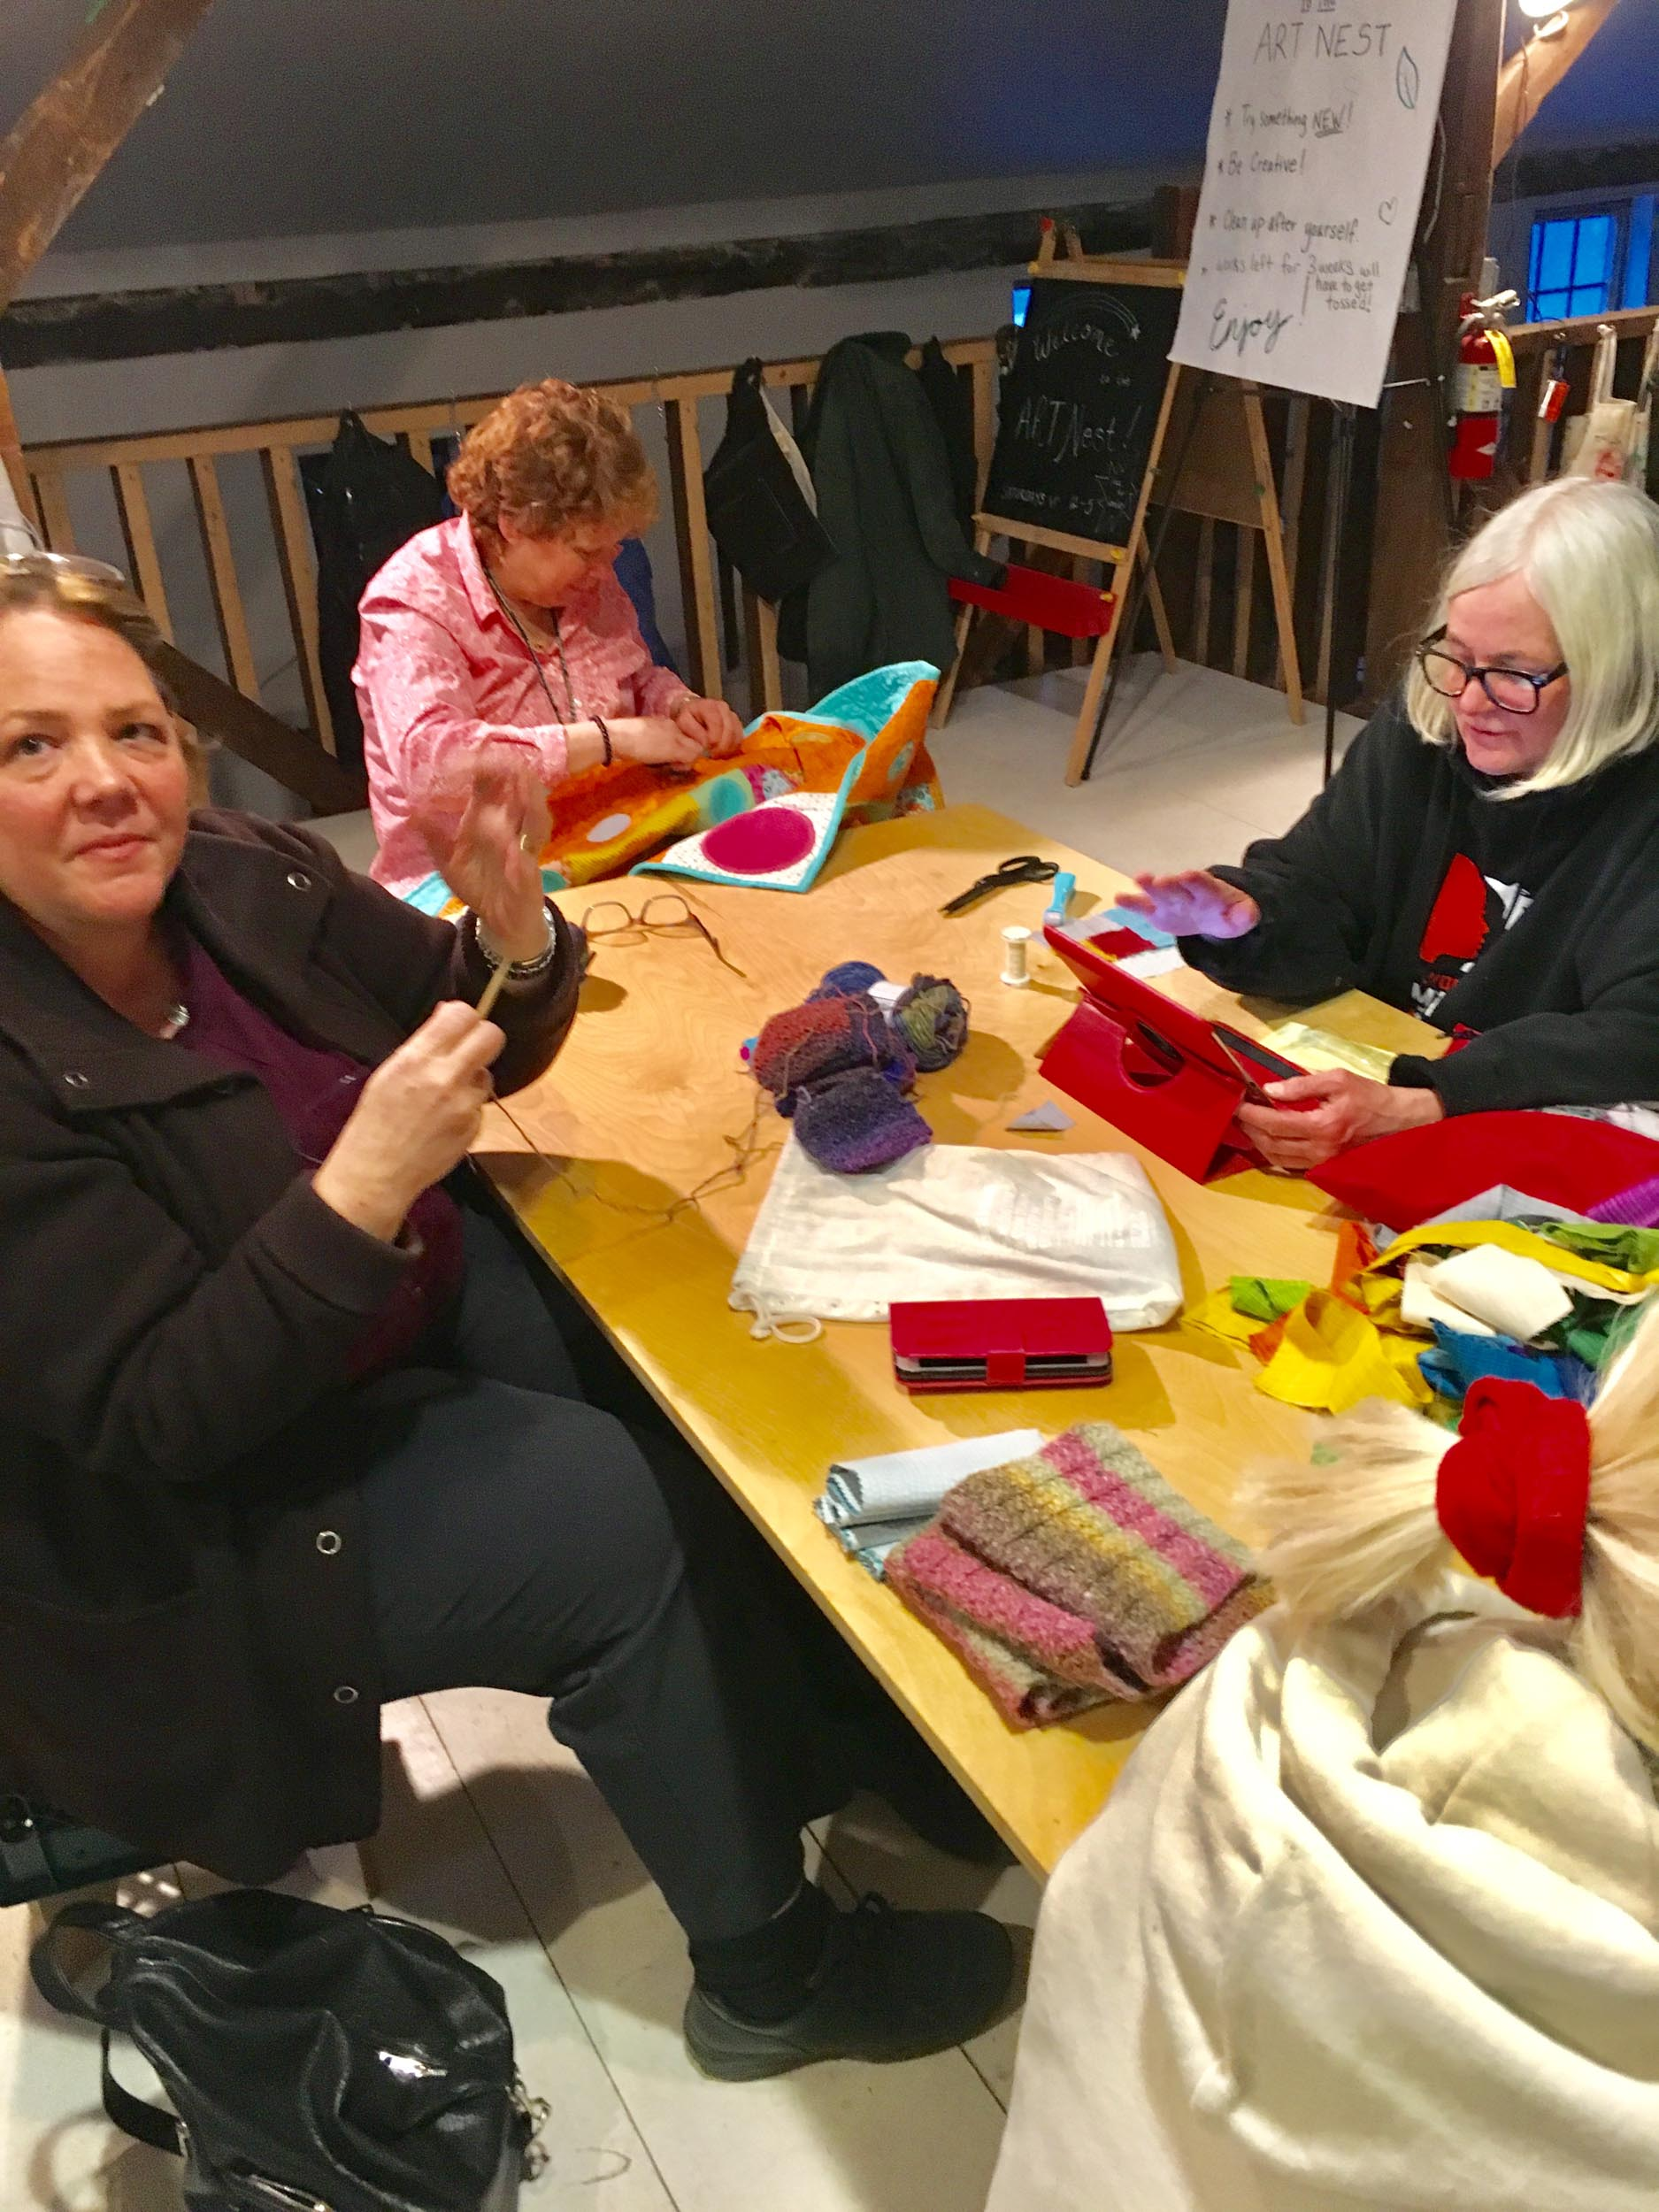 wassaic-project-education-fiber-arts-club-2018-04-17-19-28-42.jpg